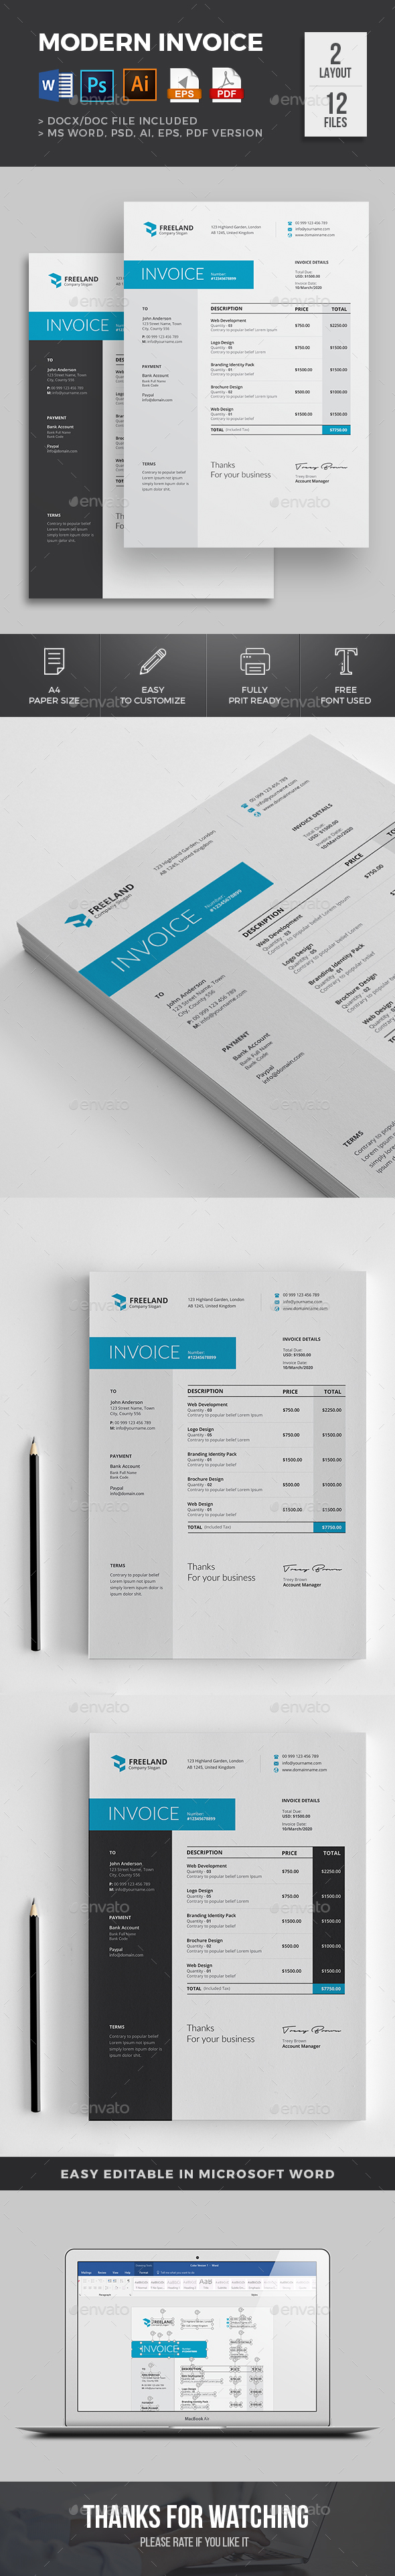 Invoice - Proposals & Invoices Stationery